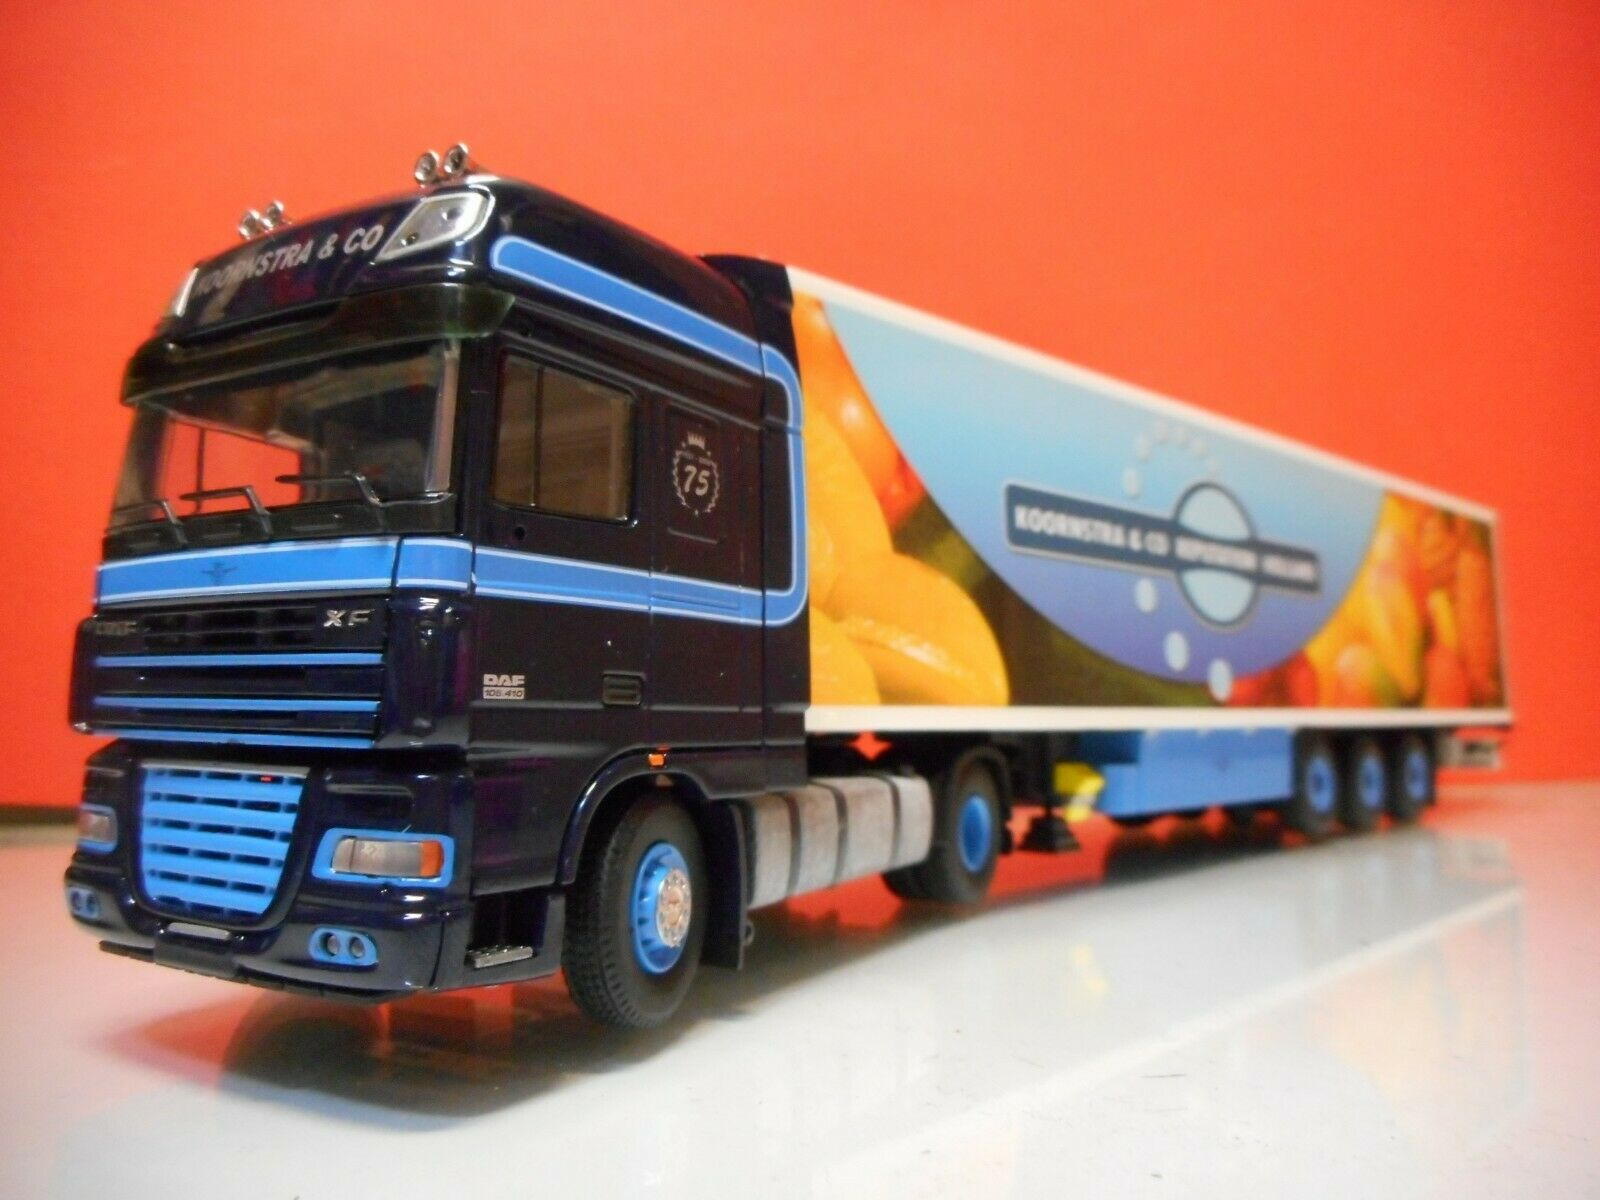 TEKNO 54230 DAF XF 105 SUPER spazioCAB WITH FRIDGE TRAILER KOORNSTRA